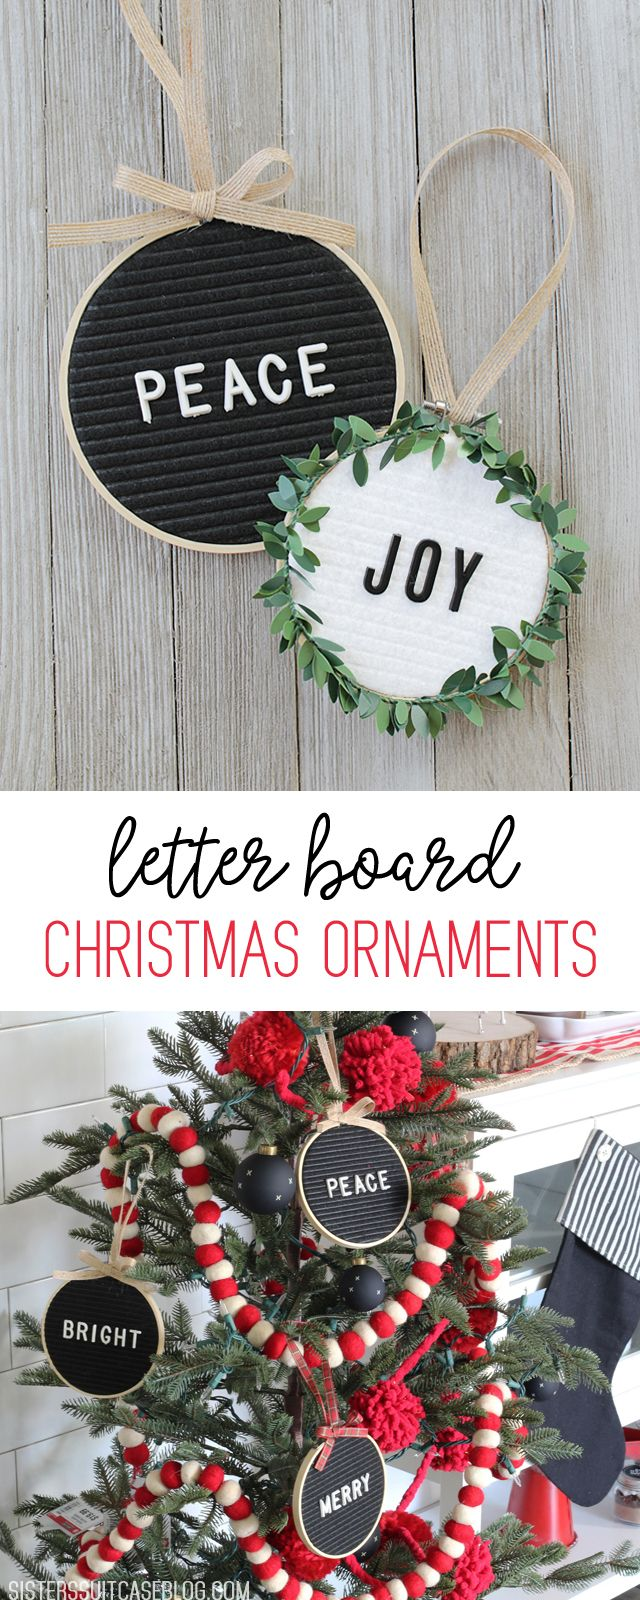 DIY Letter Board Christmas Ornaments - full tutorial and supply list!